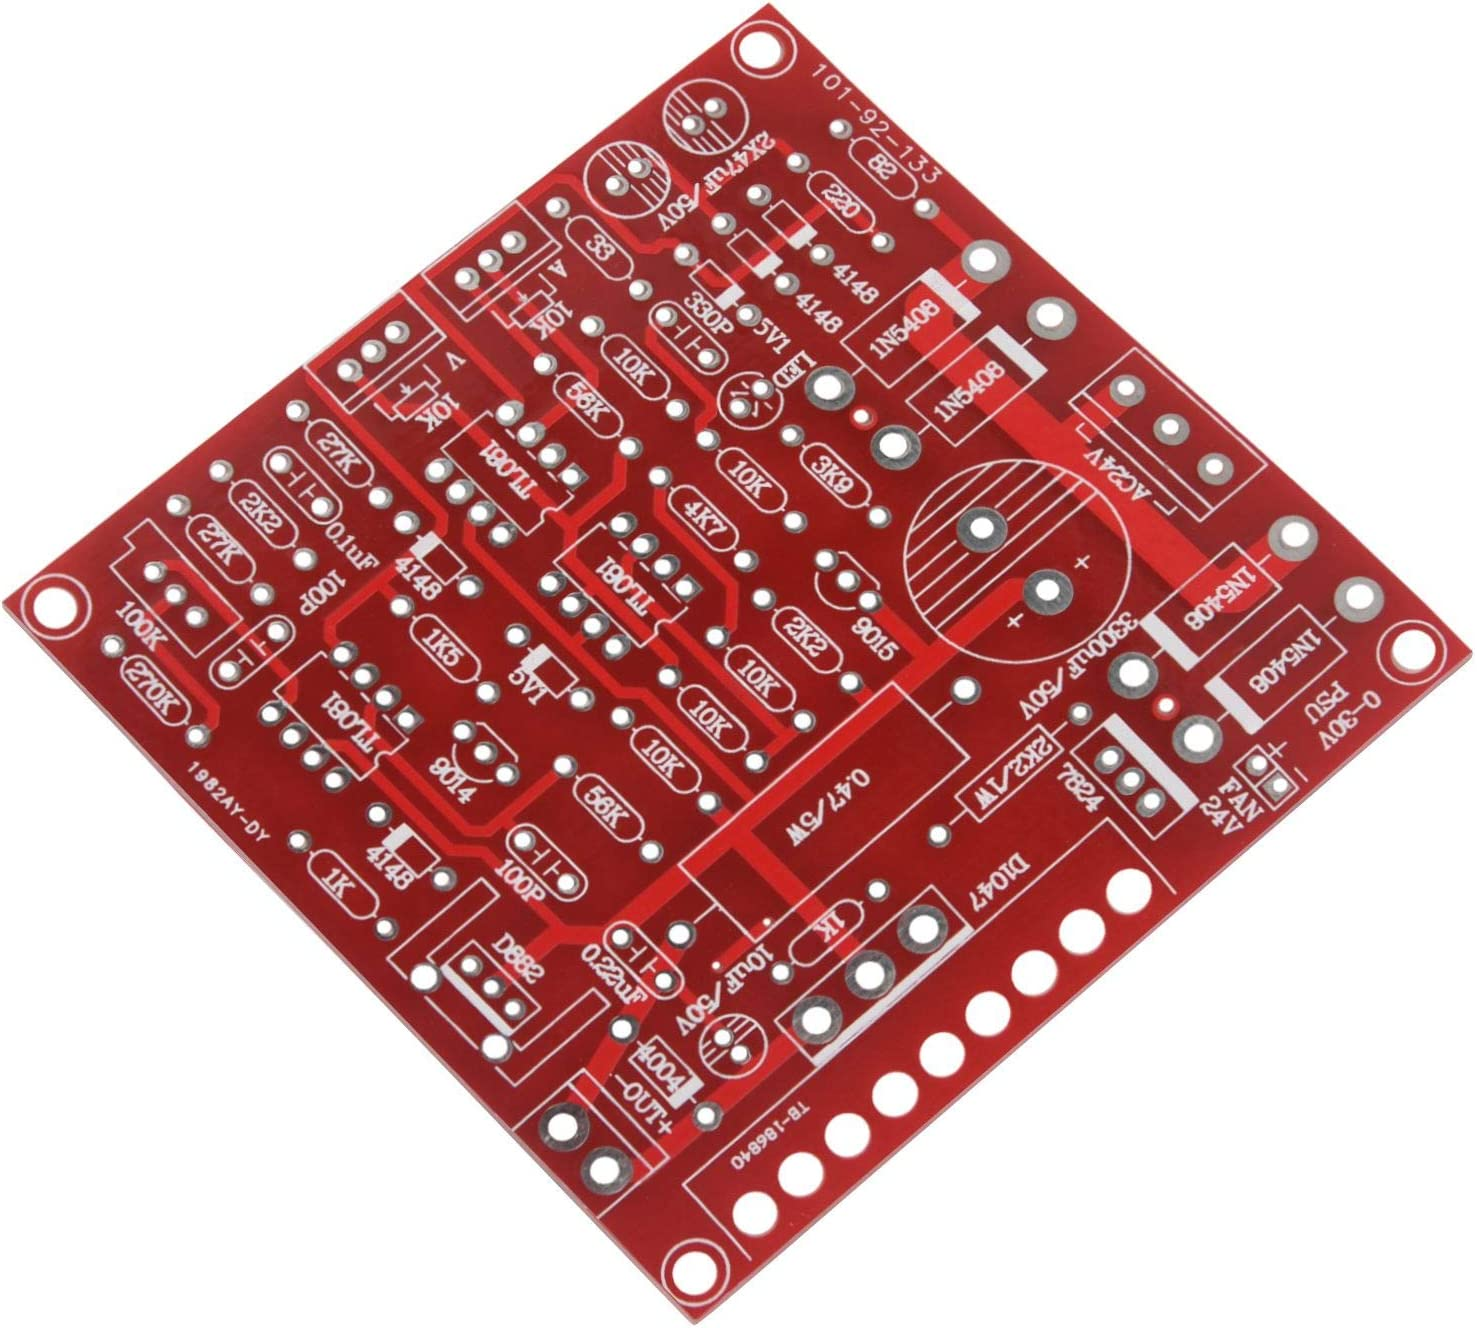 Red 0-30V 2mA-3A Continuously Adjustable DC Regulate Power Supply DIY Kit~GQ